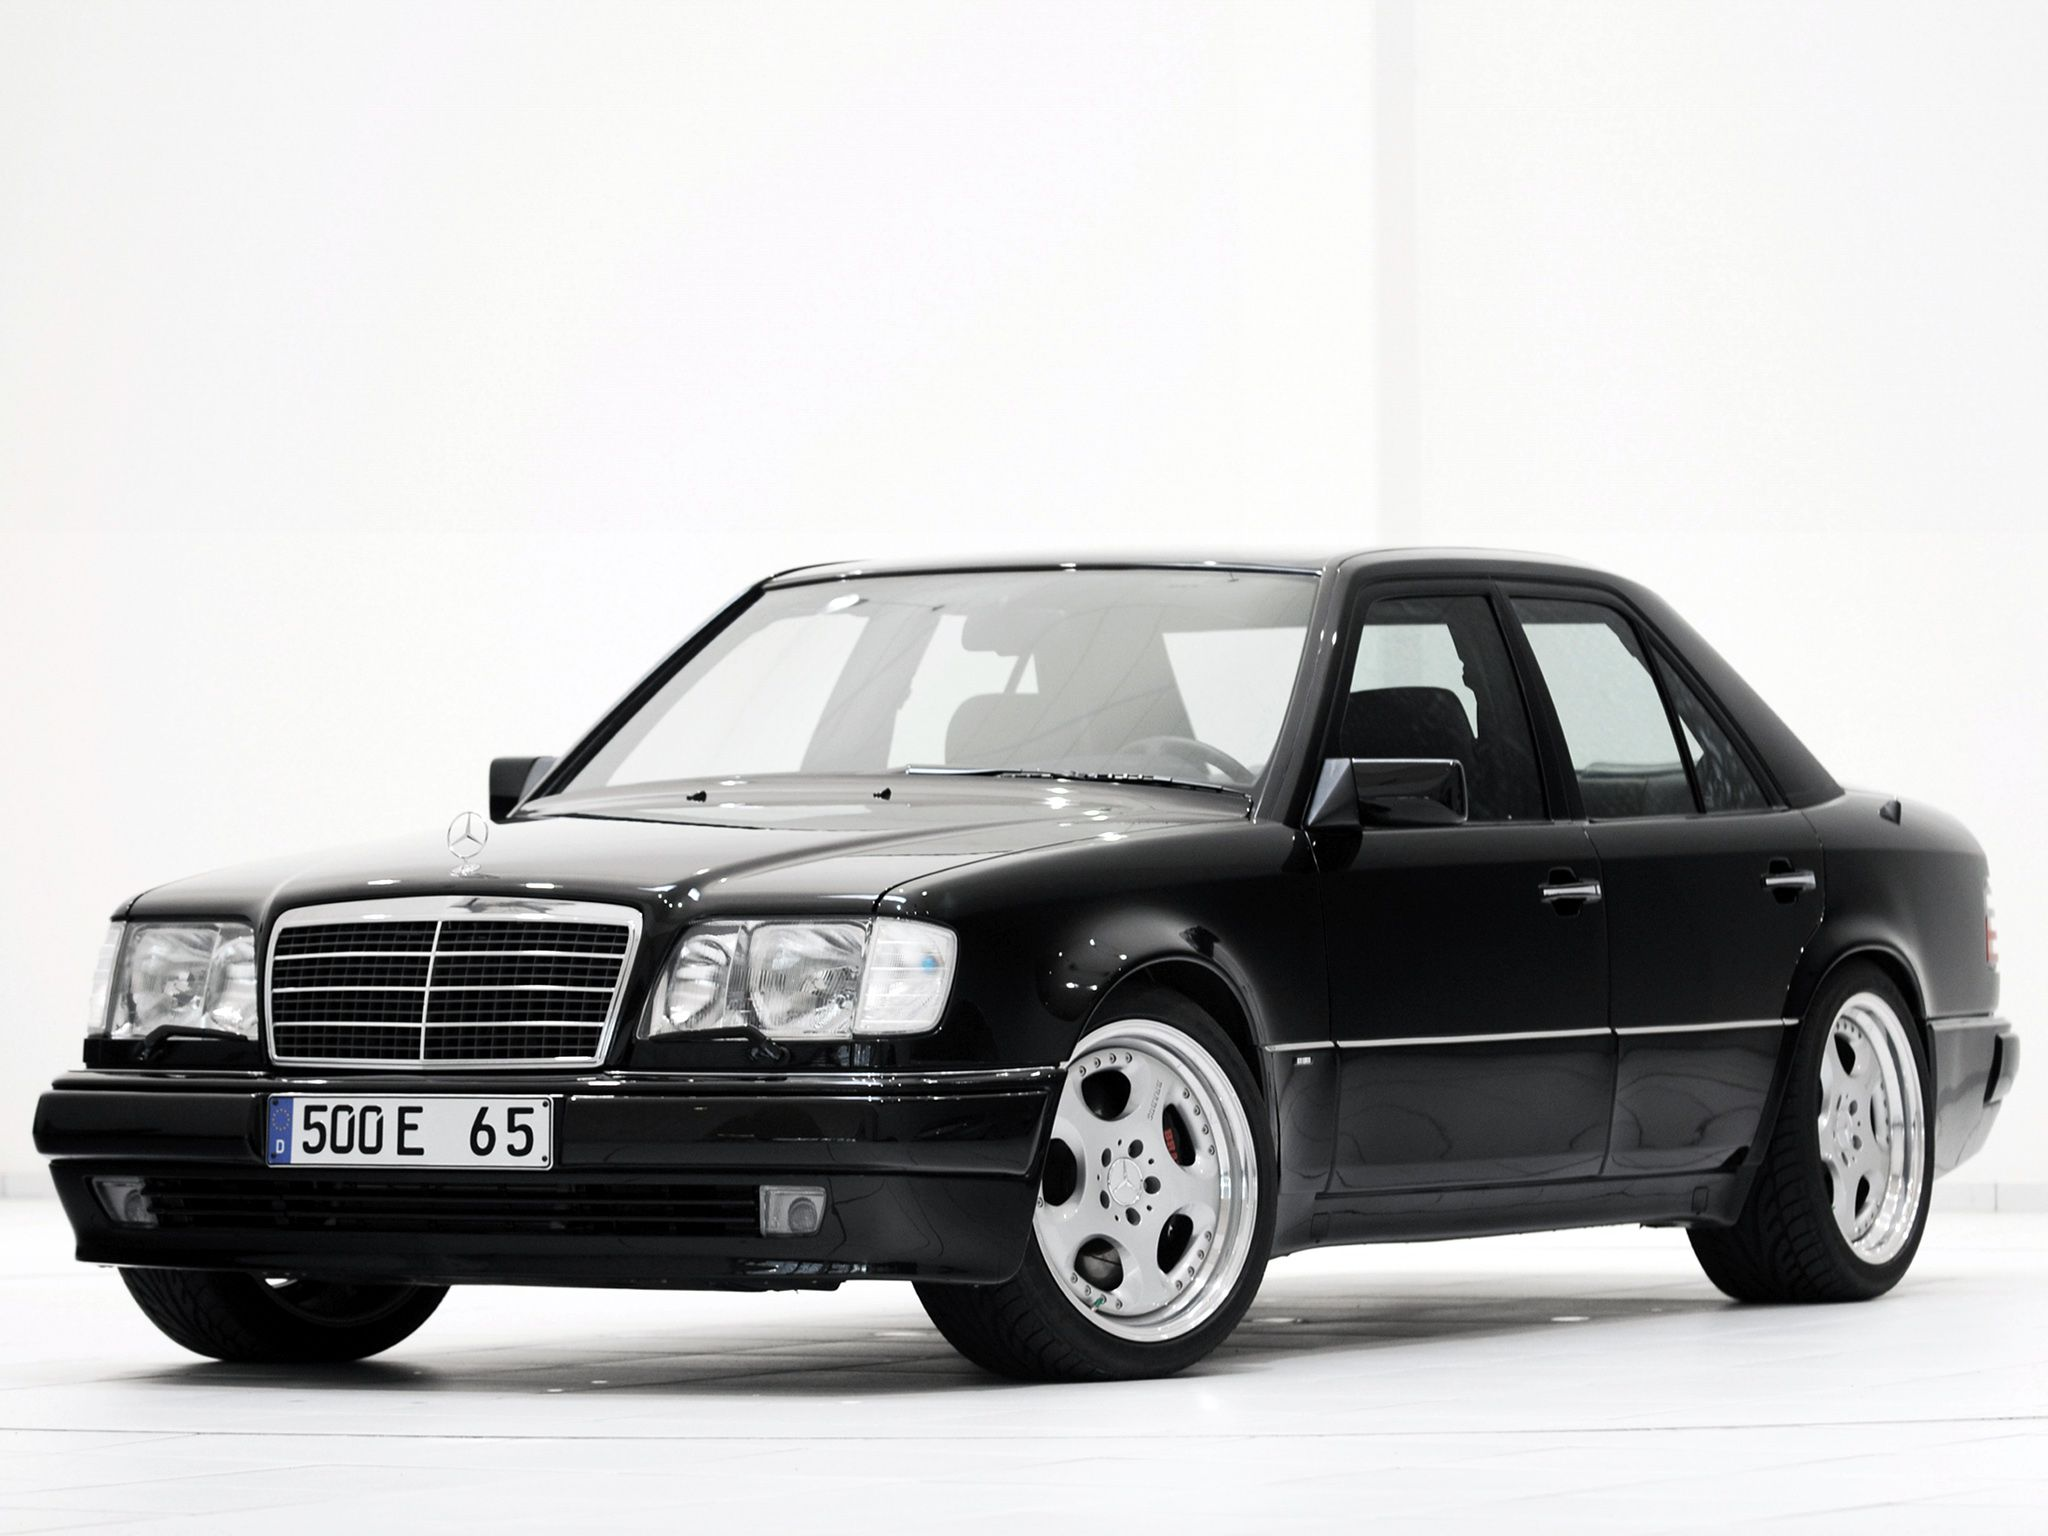 For Sale A Legendary Model Brabus Mercedes Benz W124 Mercedes